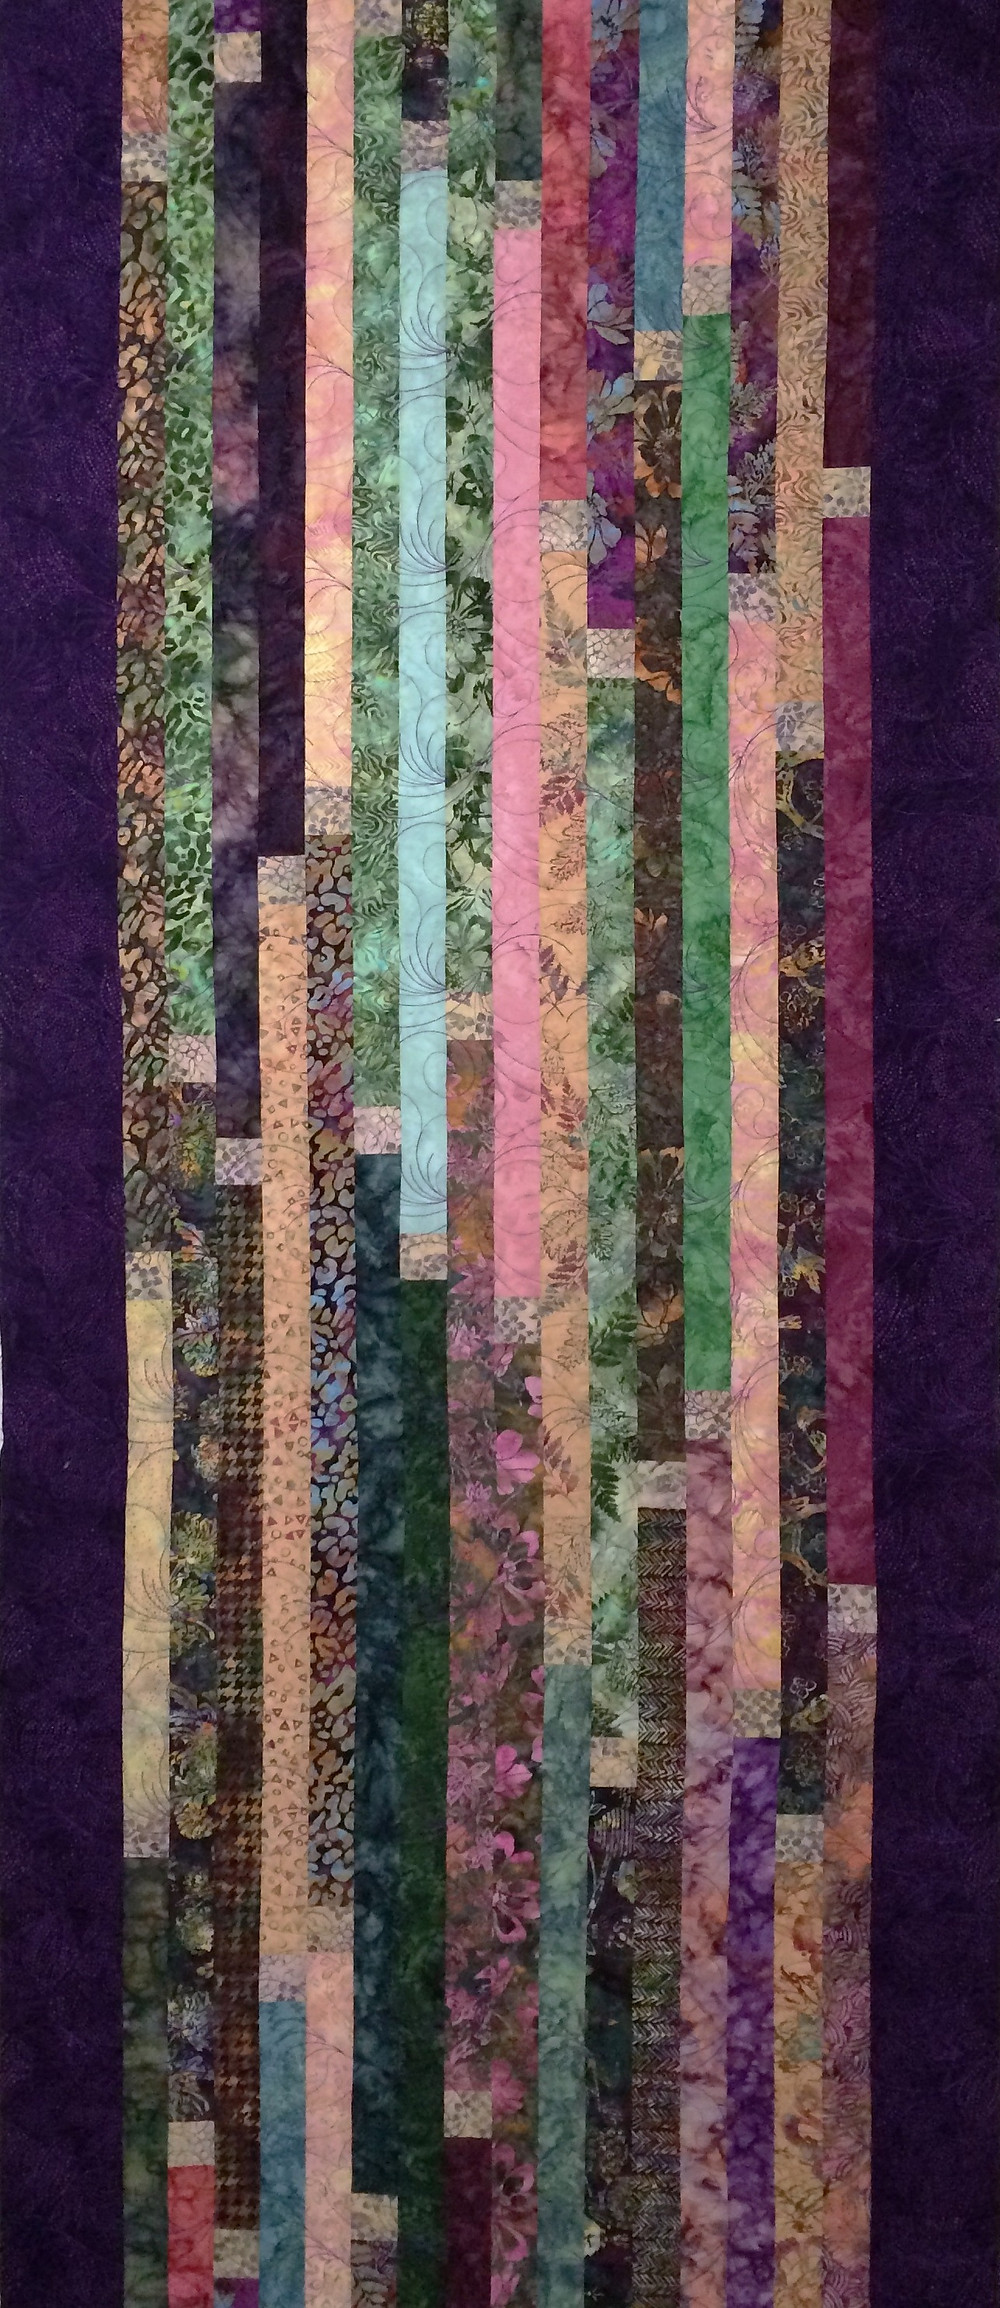 Bali Jelly Roll Quilt by Sally Krebs